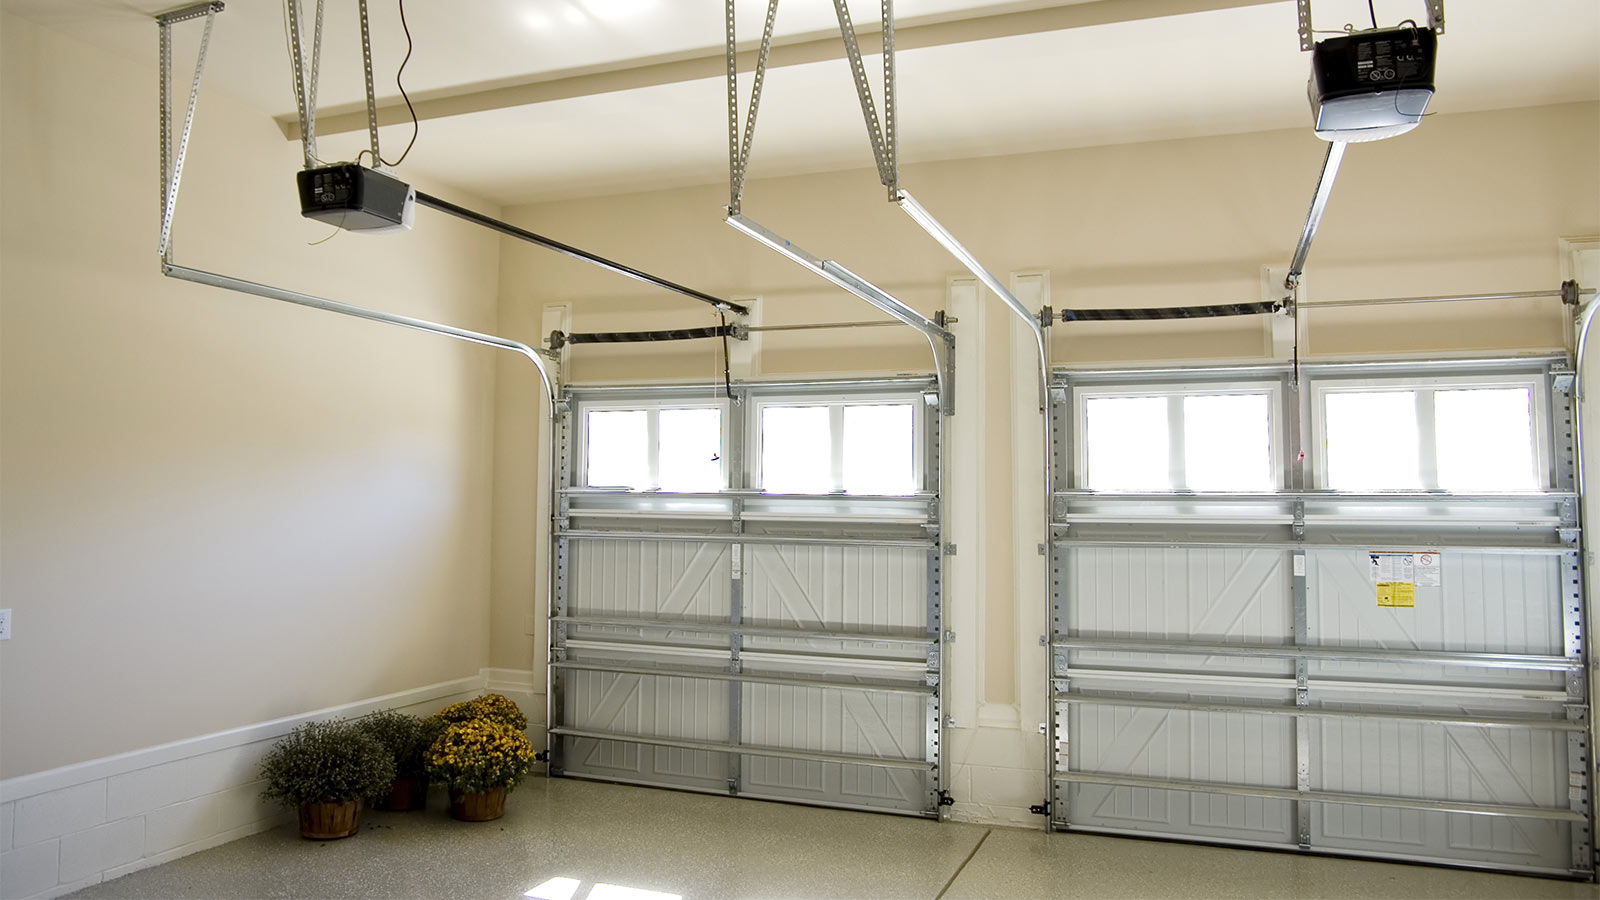 Sectional Garage Doors from Security Gates Surrey suppliers.